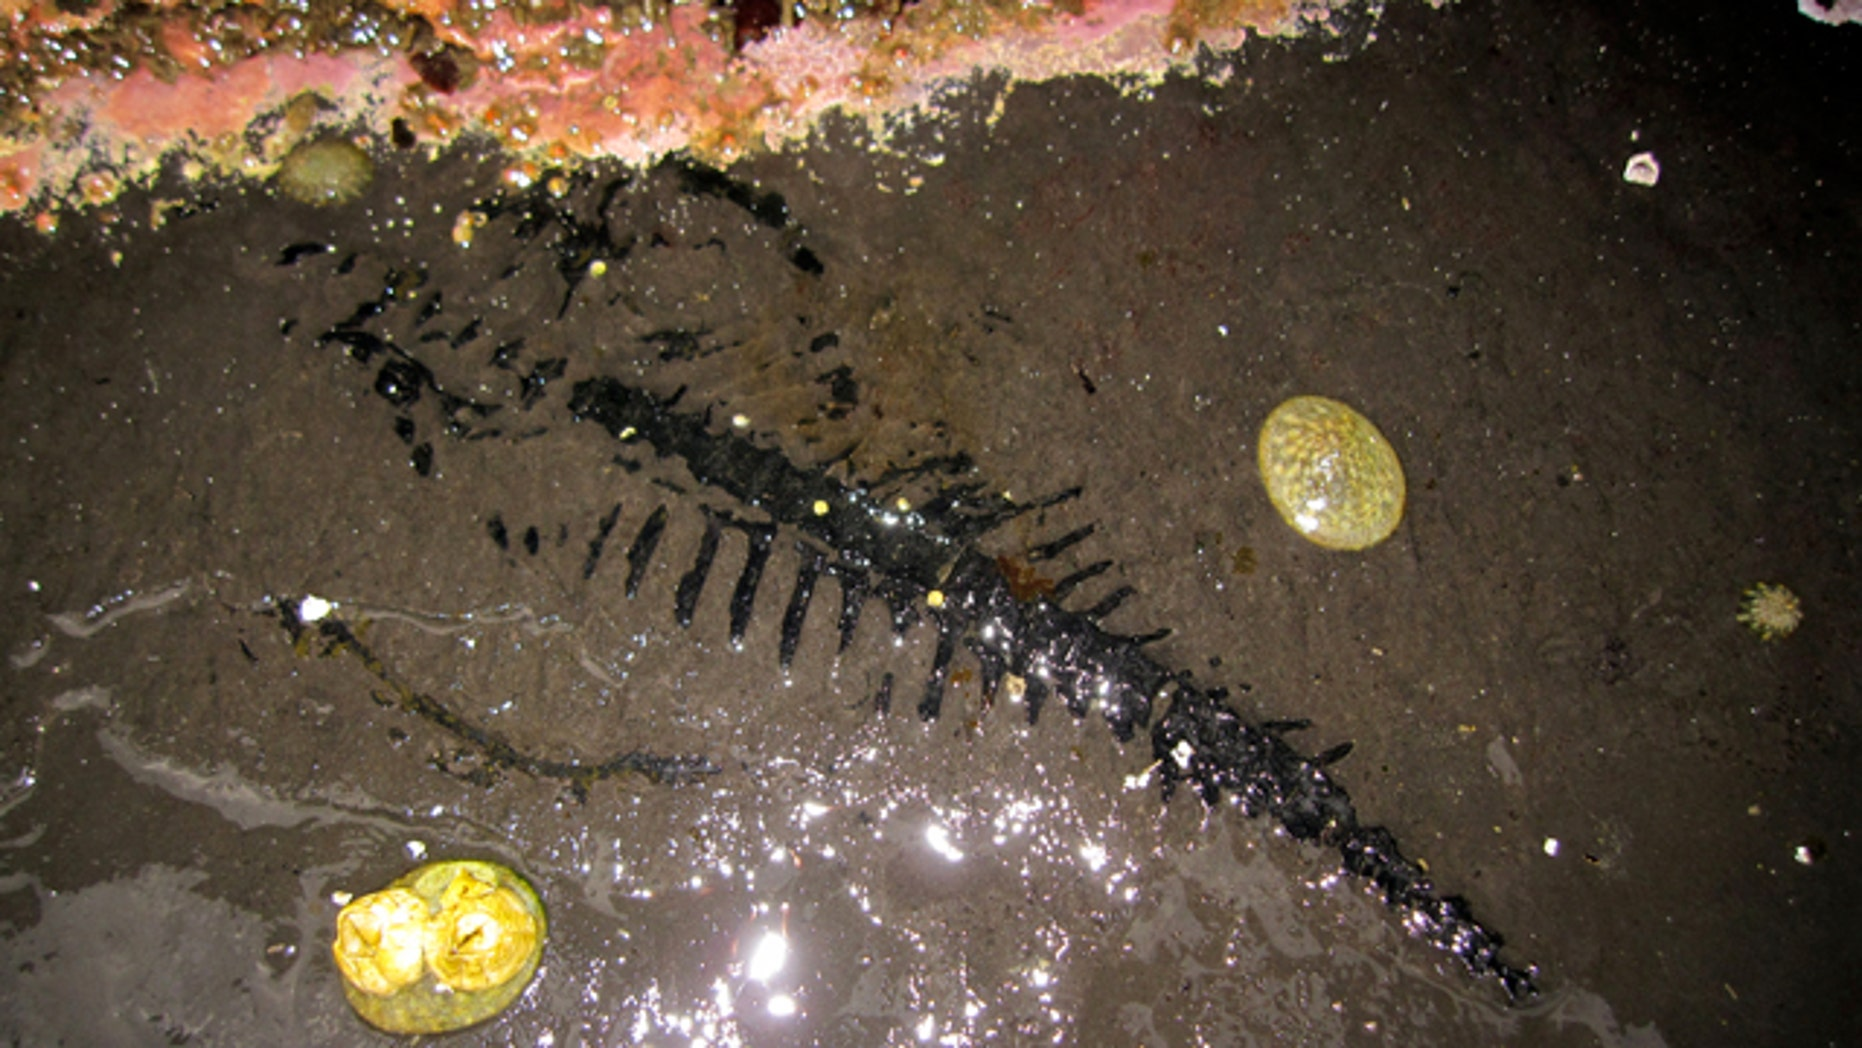 Low tides revealed this rare fossil find in Alaska.